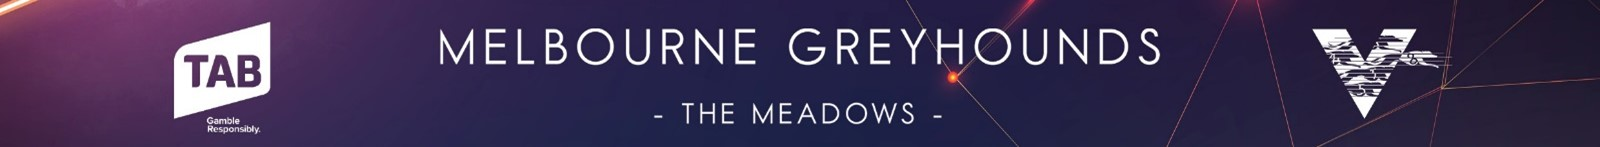 Melbourne Greyhounds - TAB footer